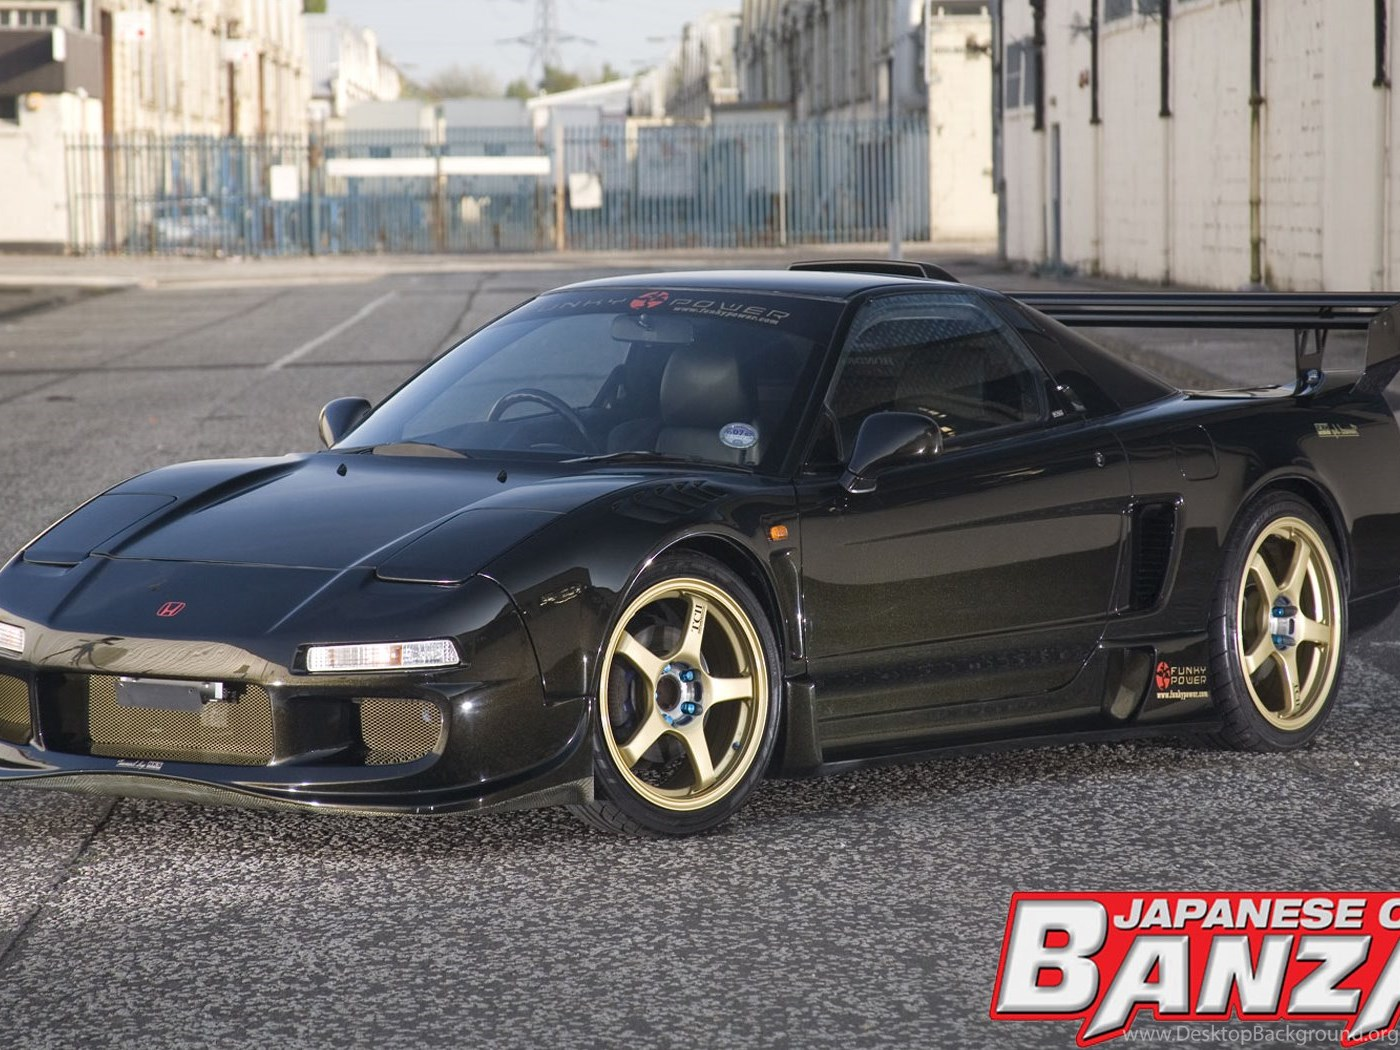 Download The Acura NSX Wallpaper, Acura NSX iPhone